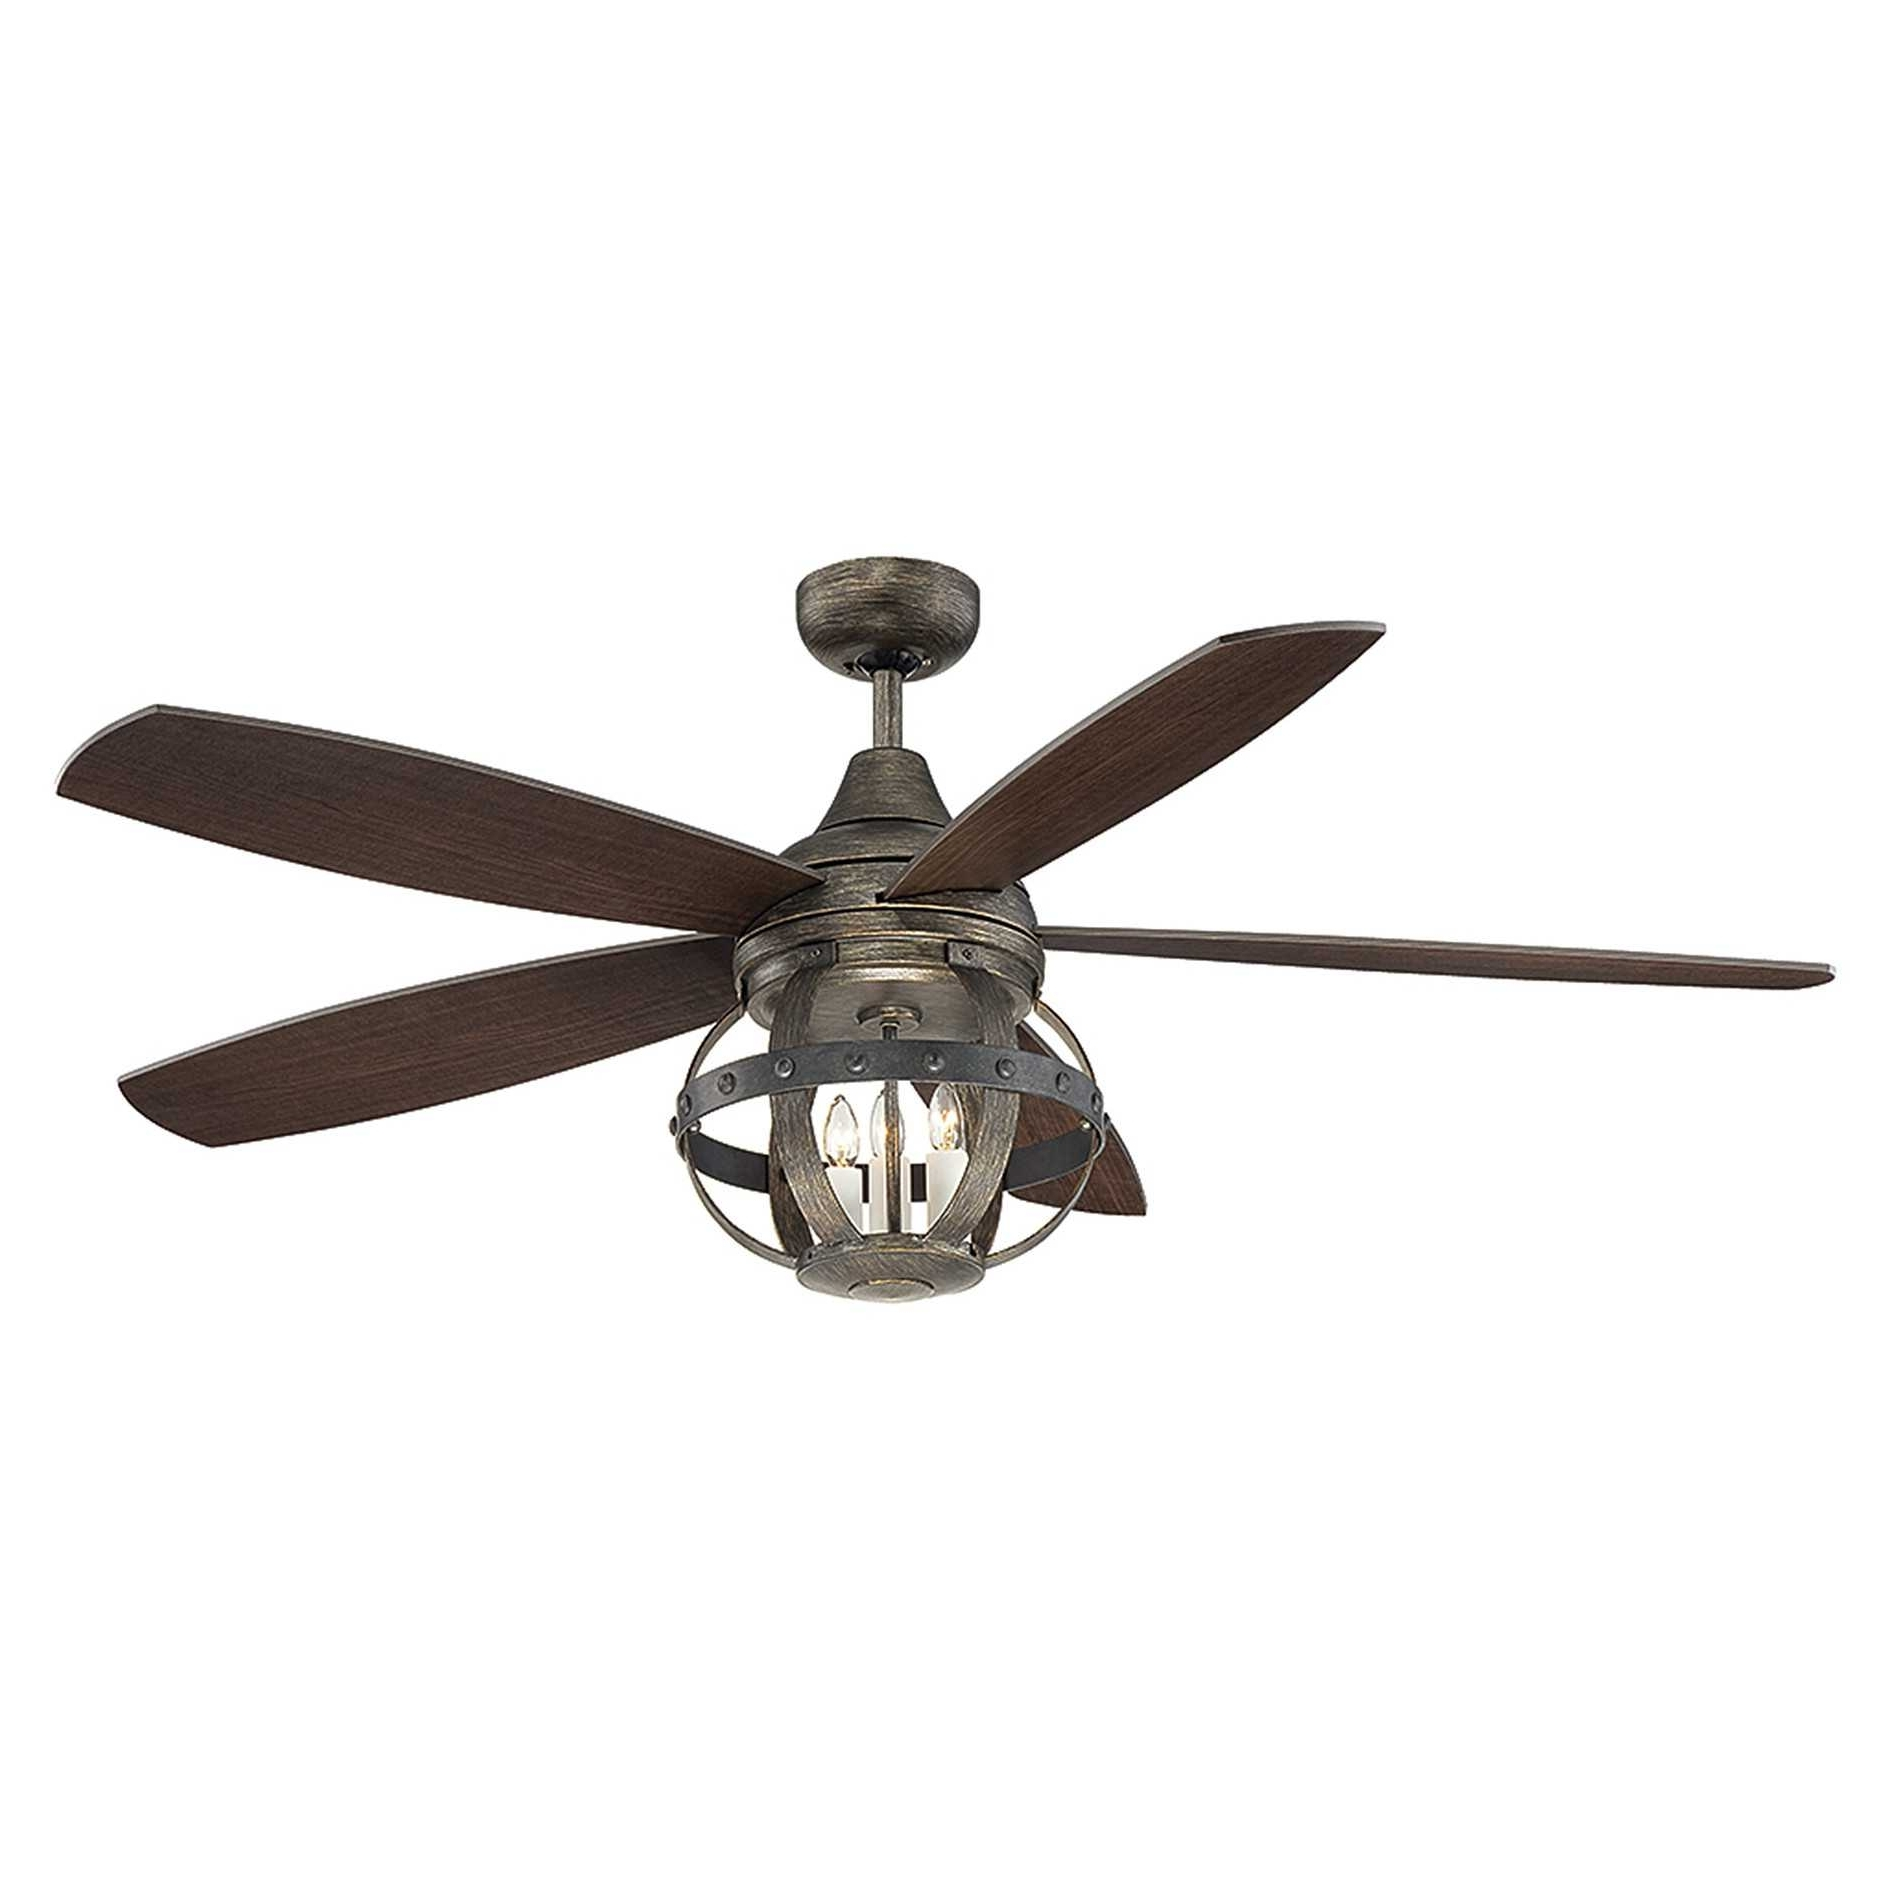 Incredible White Outdoor Ceiling Fans With Light Collection Also With Regard To Newest Brown Outdoor Ceiling Fan With Light (Gallery 16 of 20)